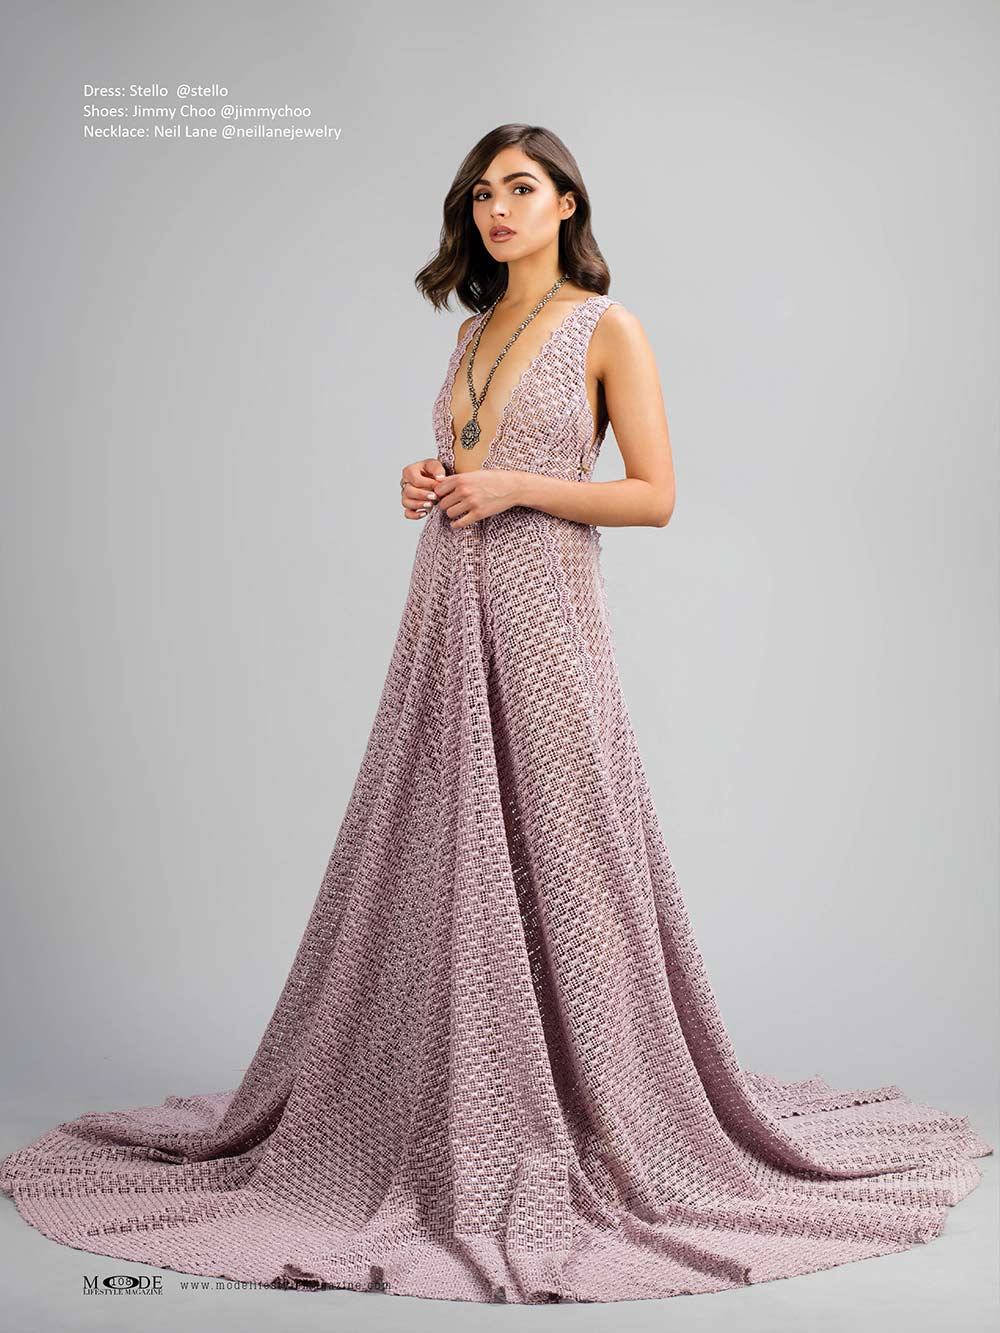 """Olivia Culpo wears dress by Stello - Mode Lifestyle Magazine """"Hollywood Icons"""" Issue"""